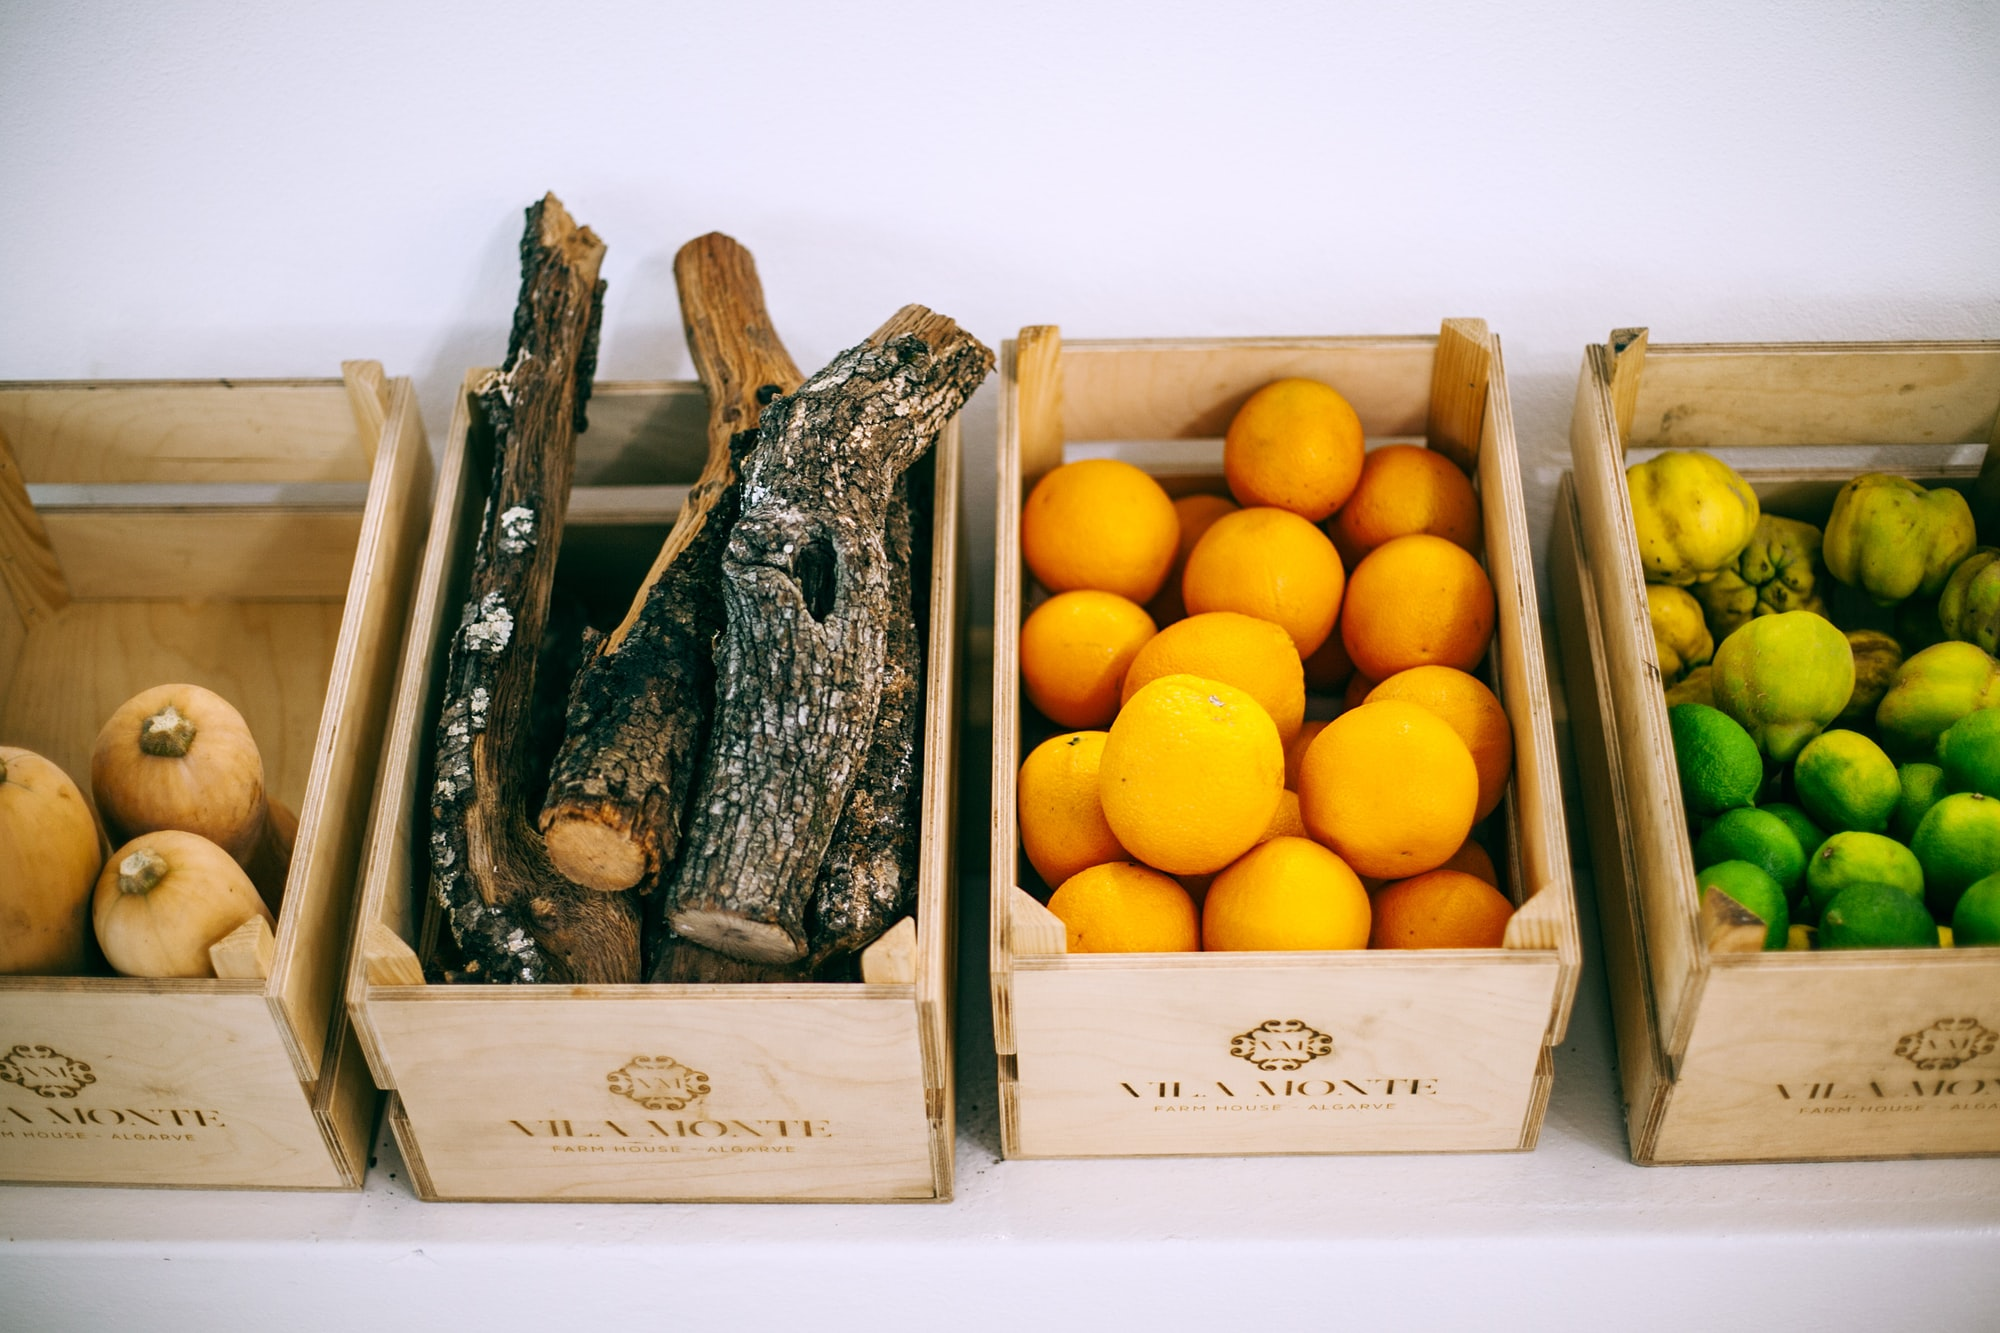 In Portugal hotel Vila Monte Farm, owners produce huge variety of fruits and vegs. Every single day, each guest allowed to take anything desirable from reception desk - fruits, logs, pumpkins, herbs